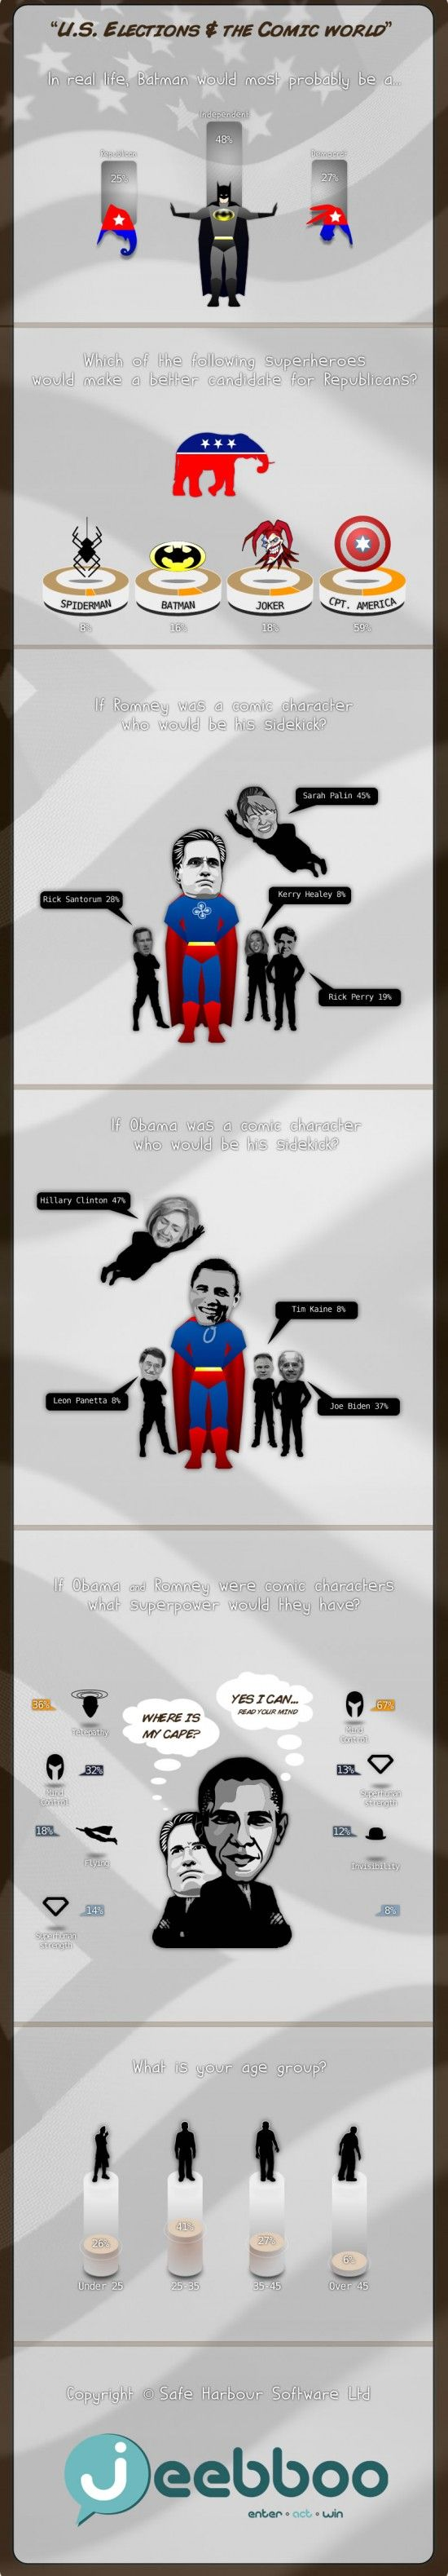 "INFOGRAPHIC: U.S ELECTIONS AND THE COMIC WORLD    ""U.S Elections and the Comic World"" is a fun perspective of how people see the upcoming elections, the two candidates in respect to the world of comics. The results are gathered from a poll performed through Jeebboo Trivia. Information about the poll and results can be found here."